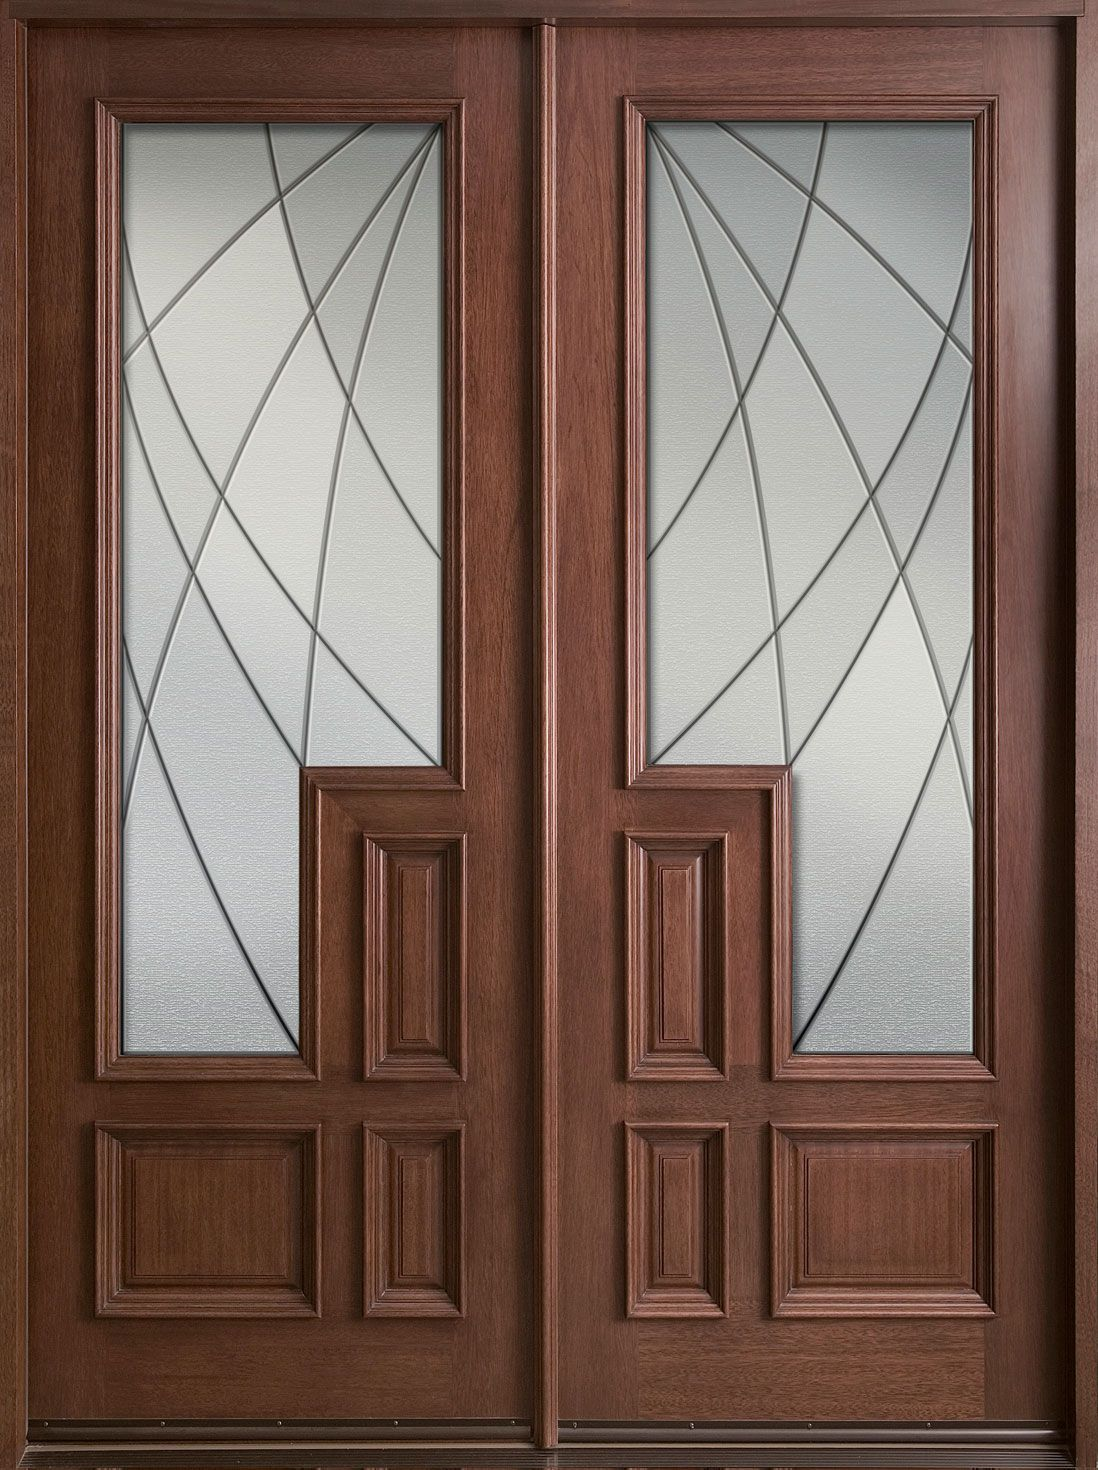 Inspiring double fiberglass entry door as furniture for for Exterior door designs for home